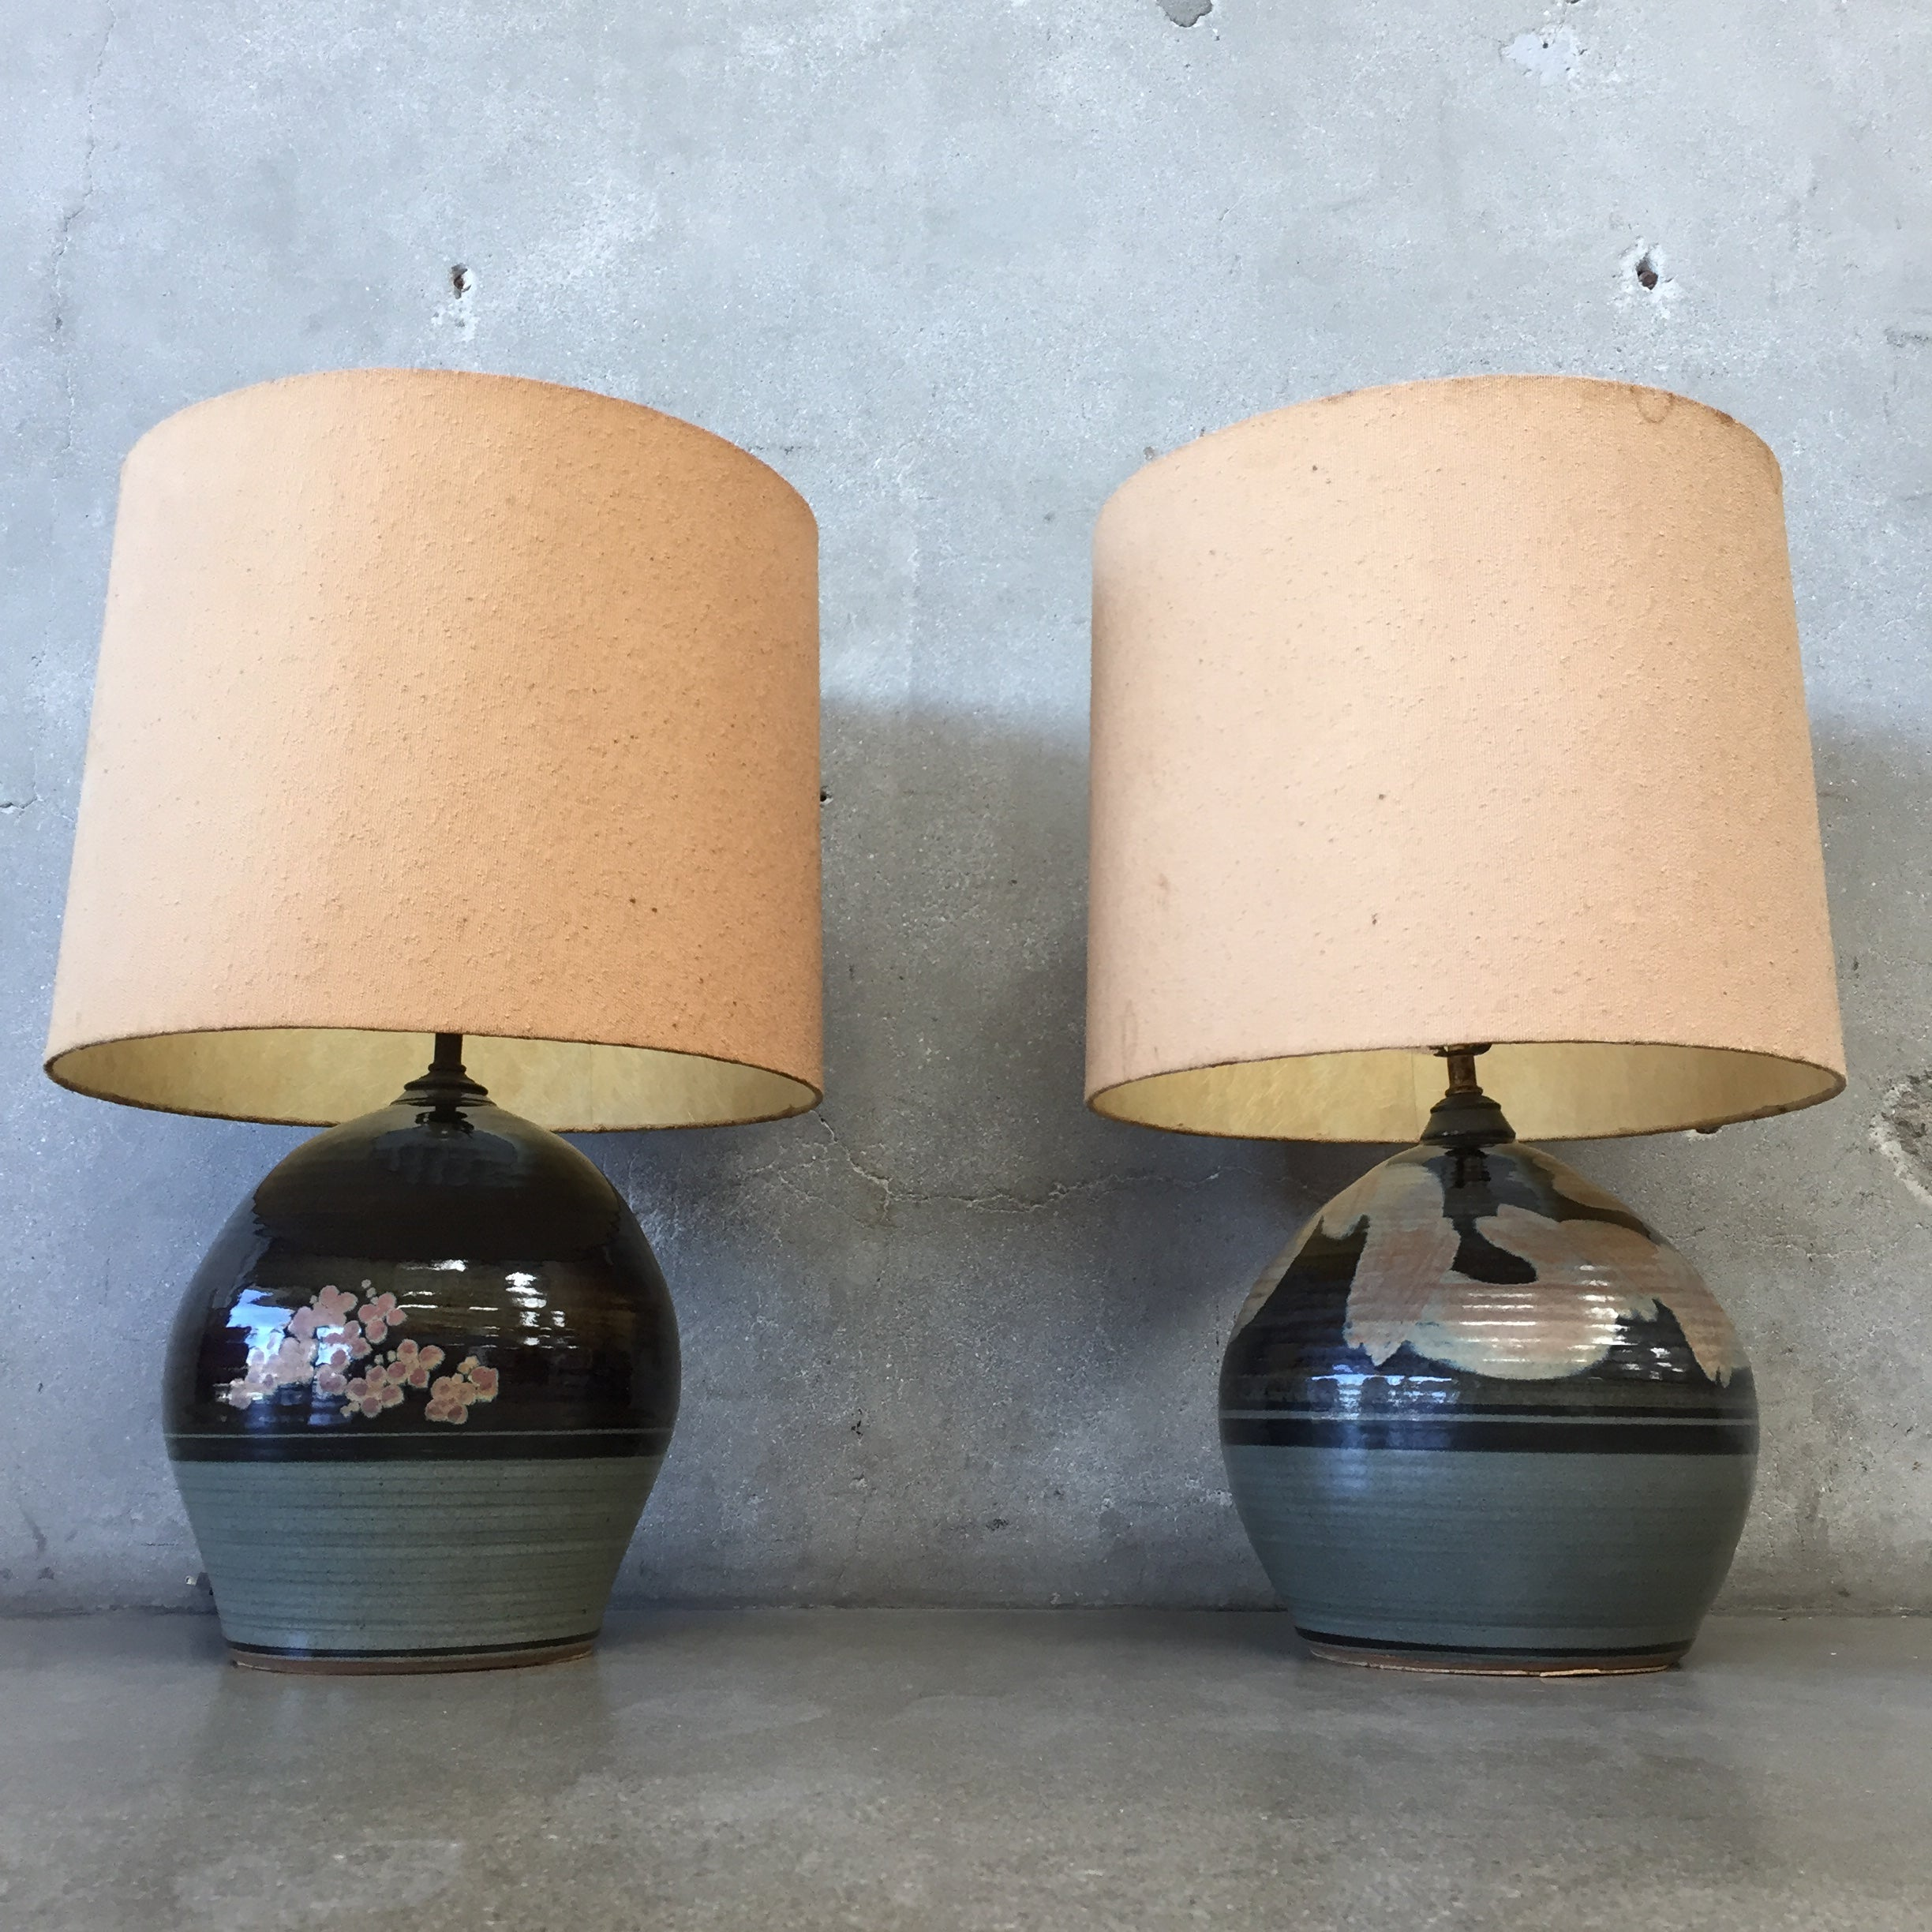 Pair of mid century studio pottery table lamps urbanamericana pair of mid century studio pottery table lamps mozeypictures Choice Image